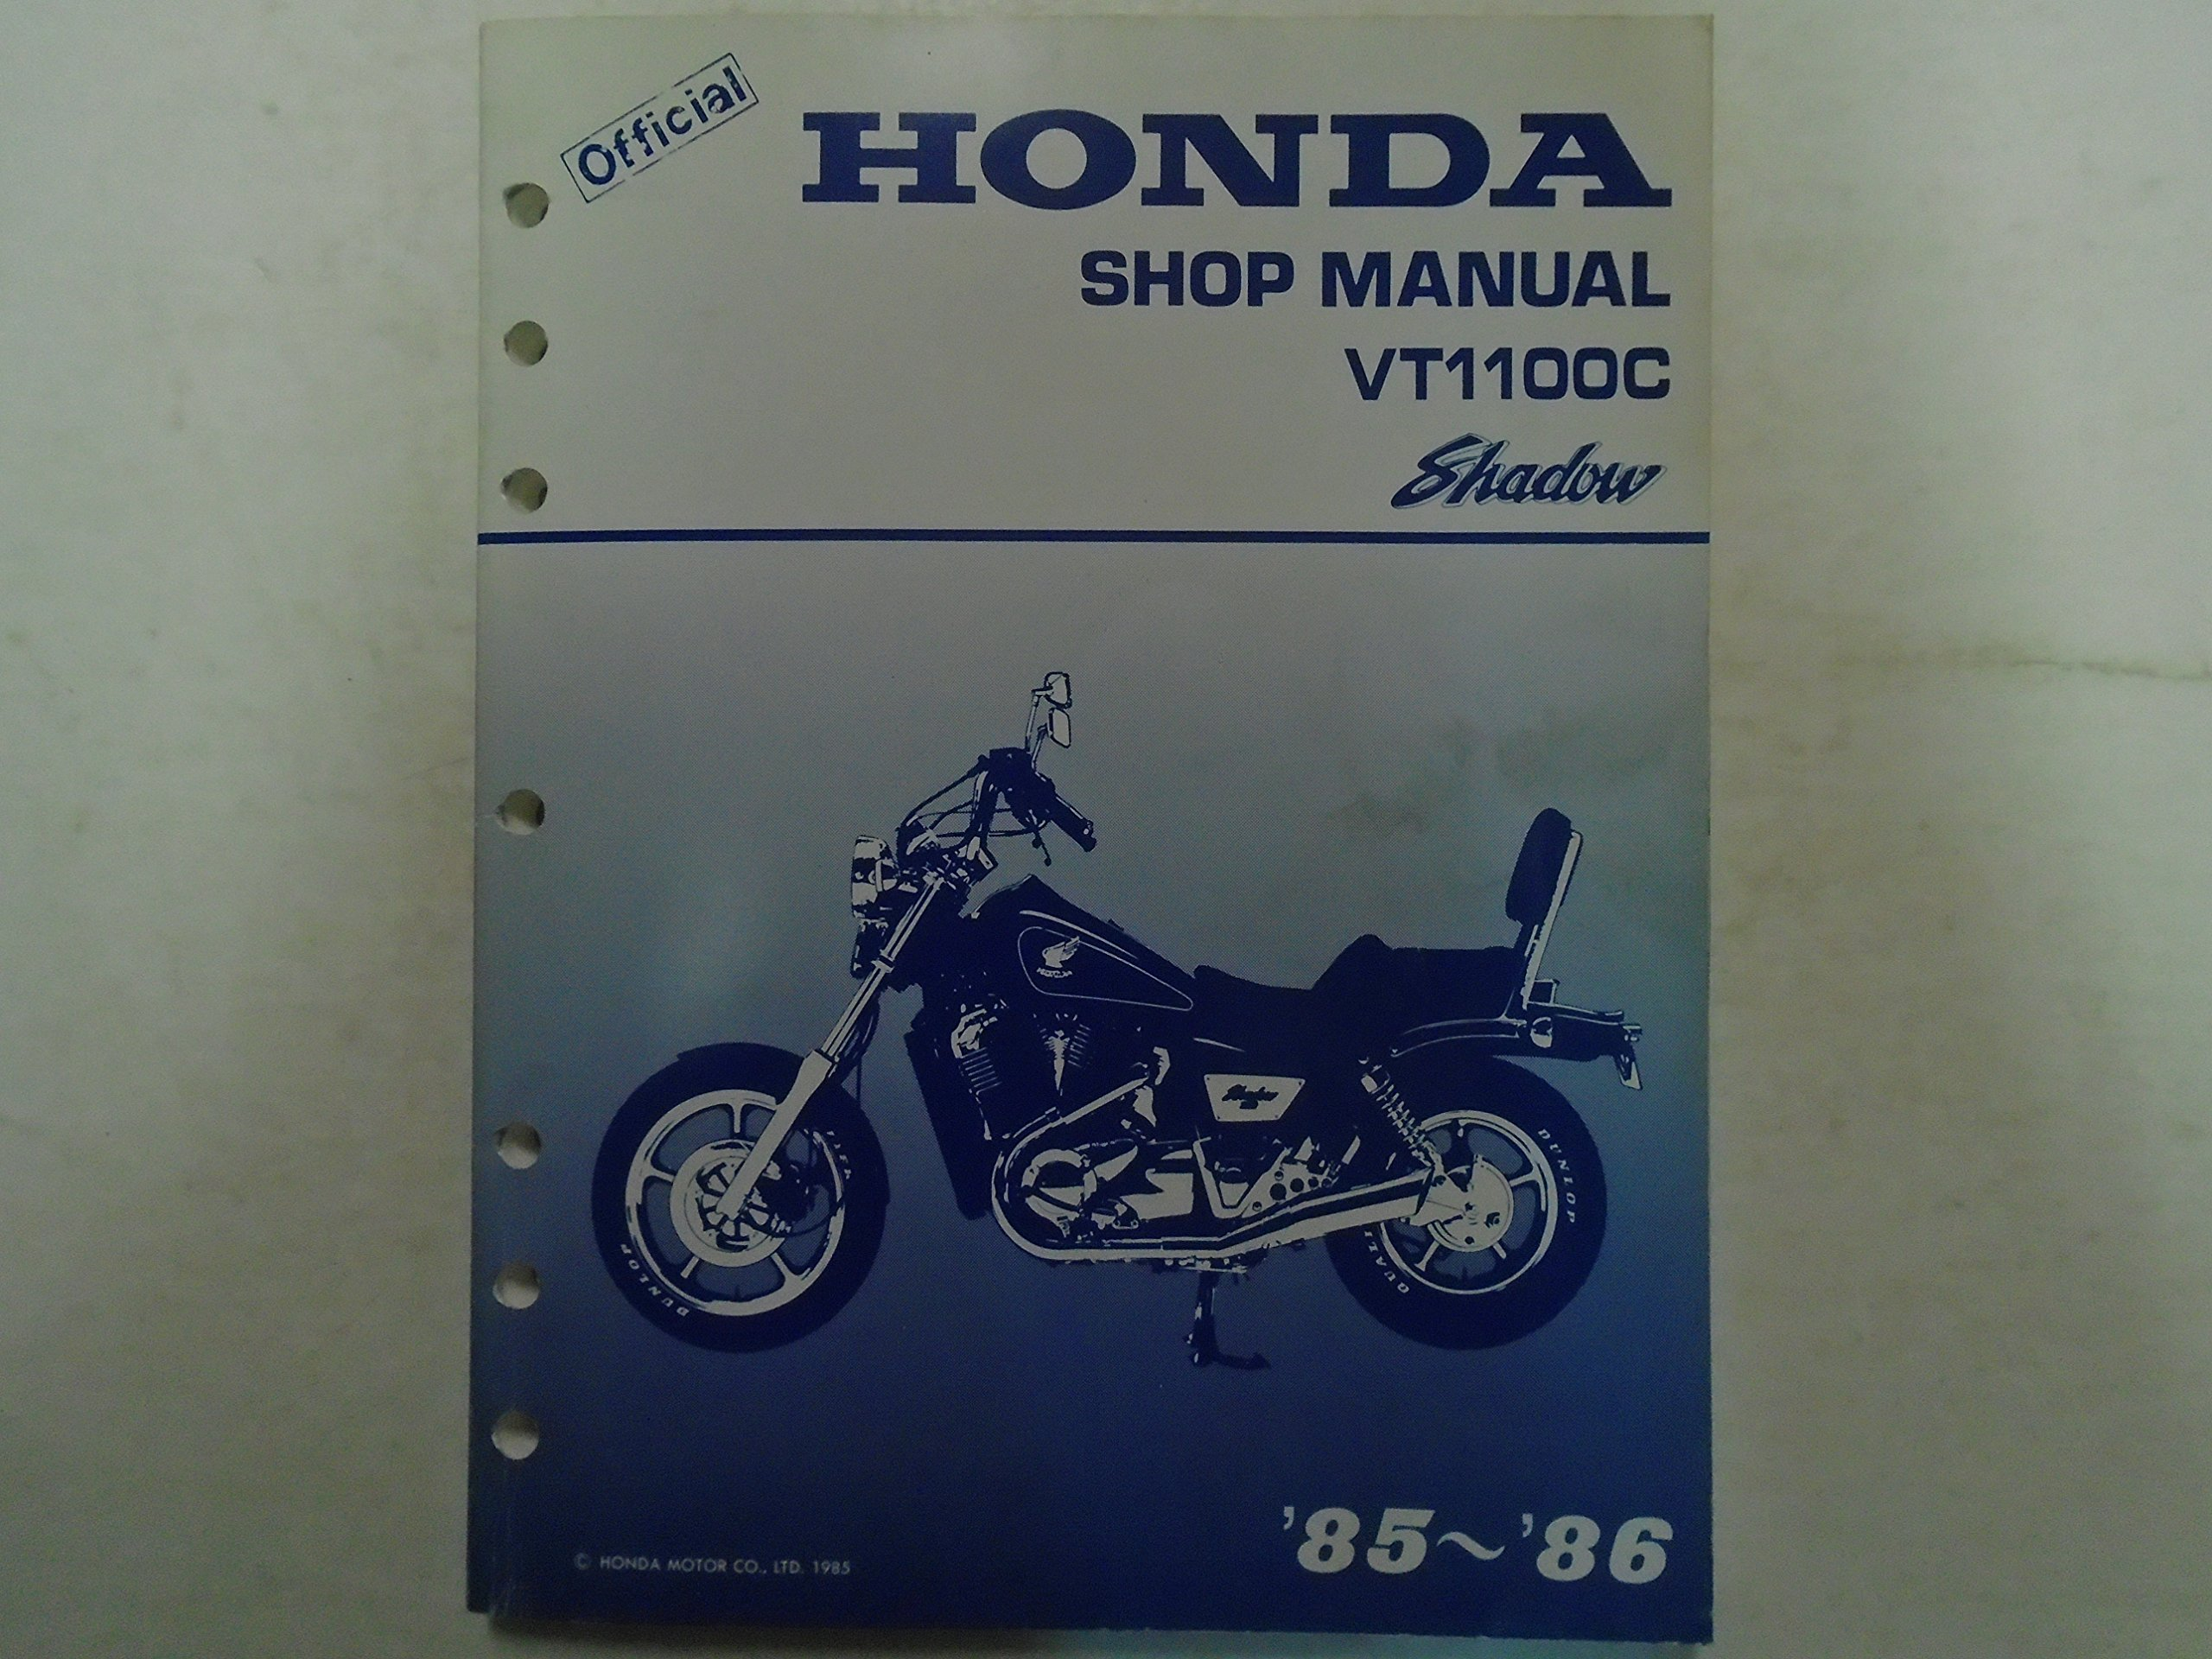 1985 1986 VT1100C HONDA VT 1100 C Shadow Service Shop Repair Manual Used  ***: HA INC: Amazon.com: Books